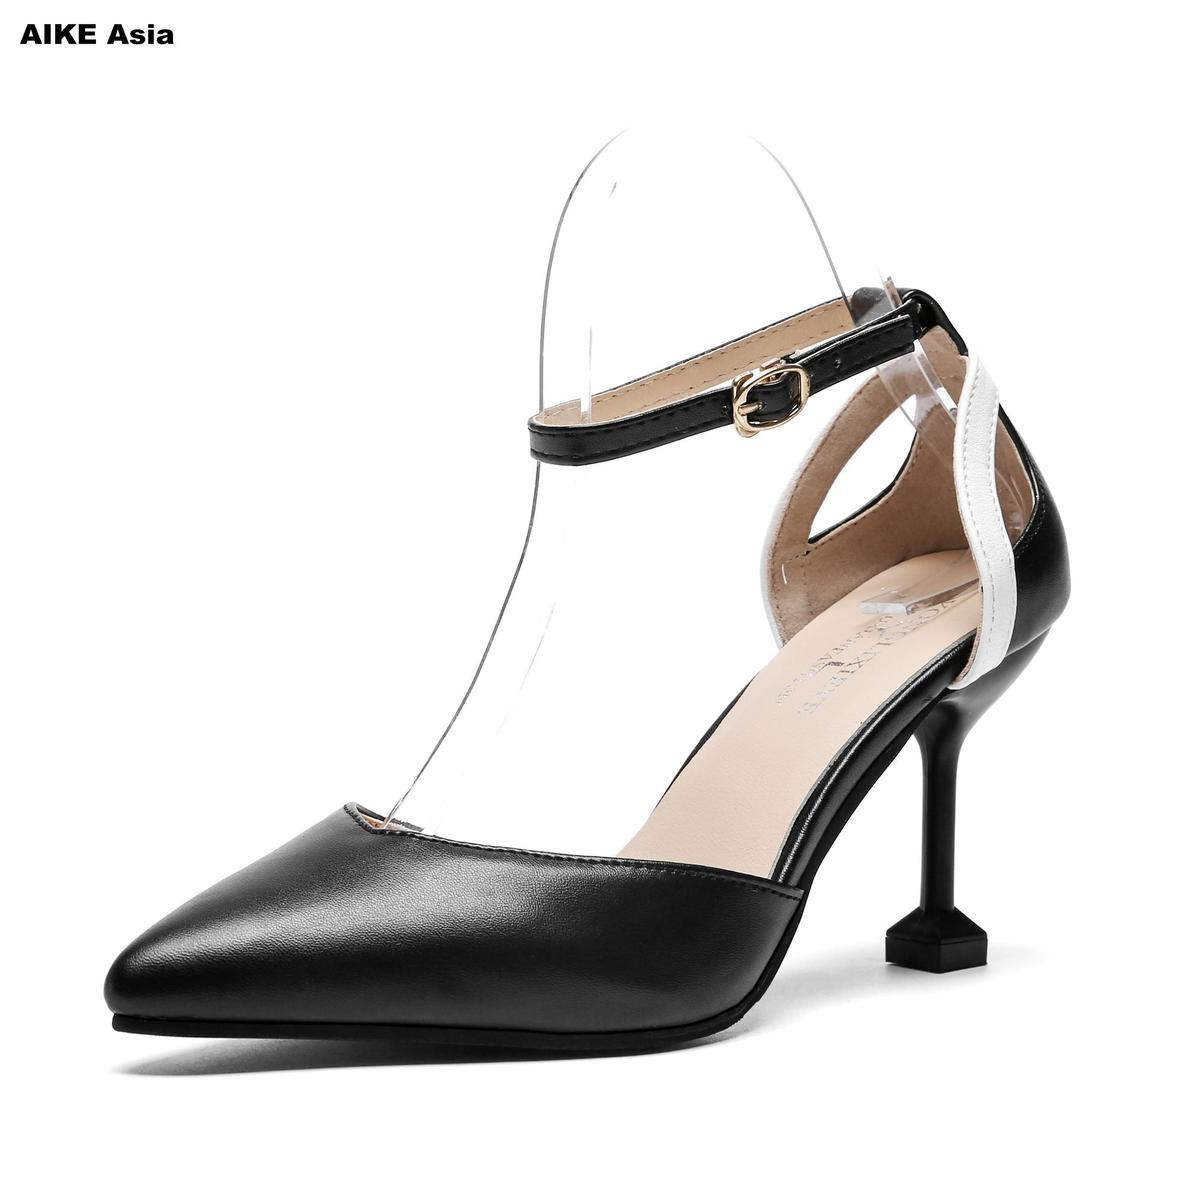 29ea1b1eabd54b 2019 2018 Hot Sale New Arrive Women Pumps Elegant Color Mixing Buckle High Heels  Shoes Pointed Toe Lady Wedding Shoes Zapatos Mujer Flat Shoes Online ...